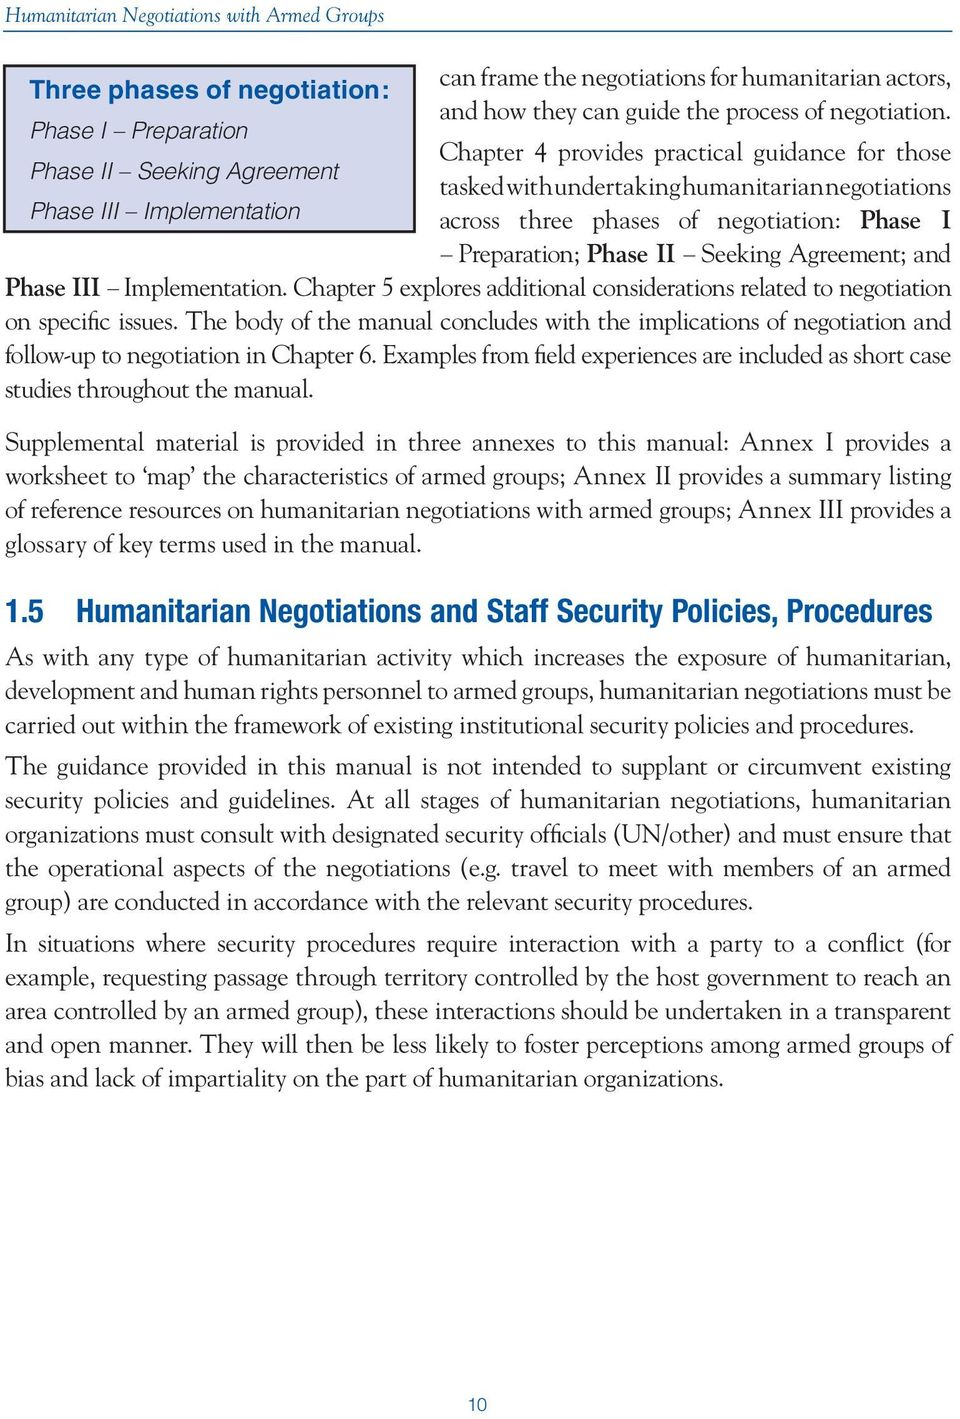 negotiation: Phase I Preparation; Phase II Seeking Agreement; and Phase III Implementation. Chapter 5 explores additional considerations related to negotiation on specific issues.